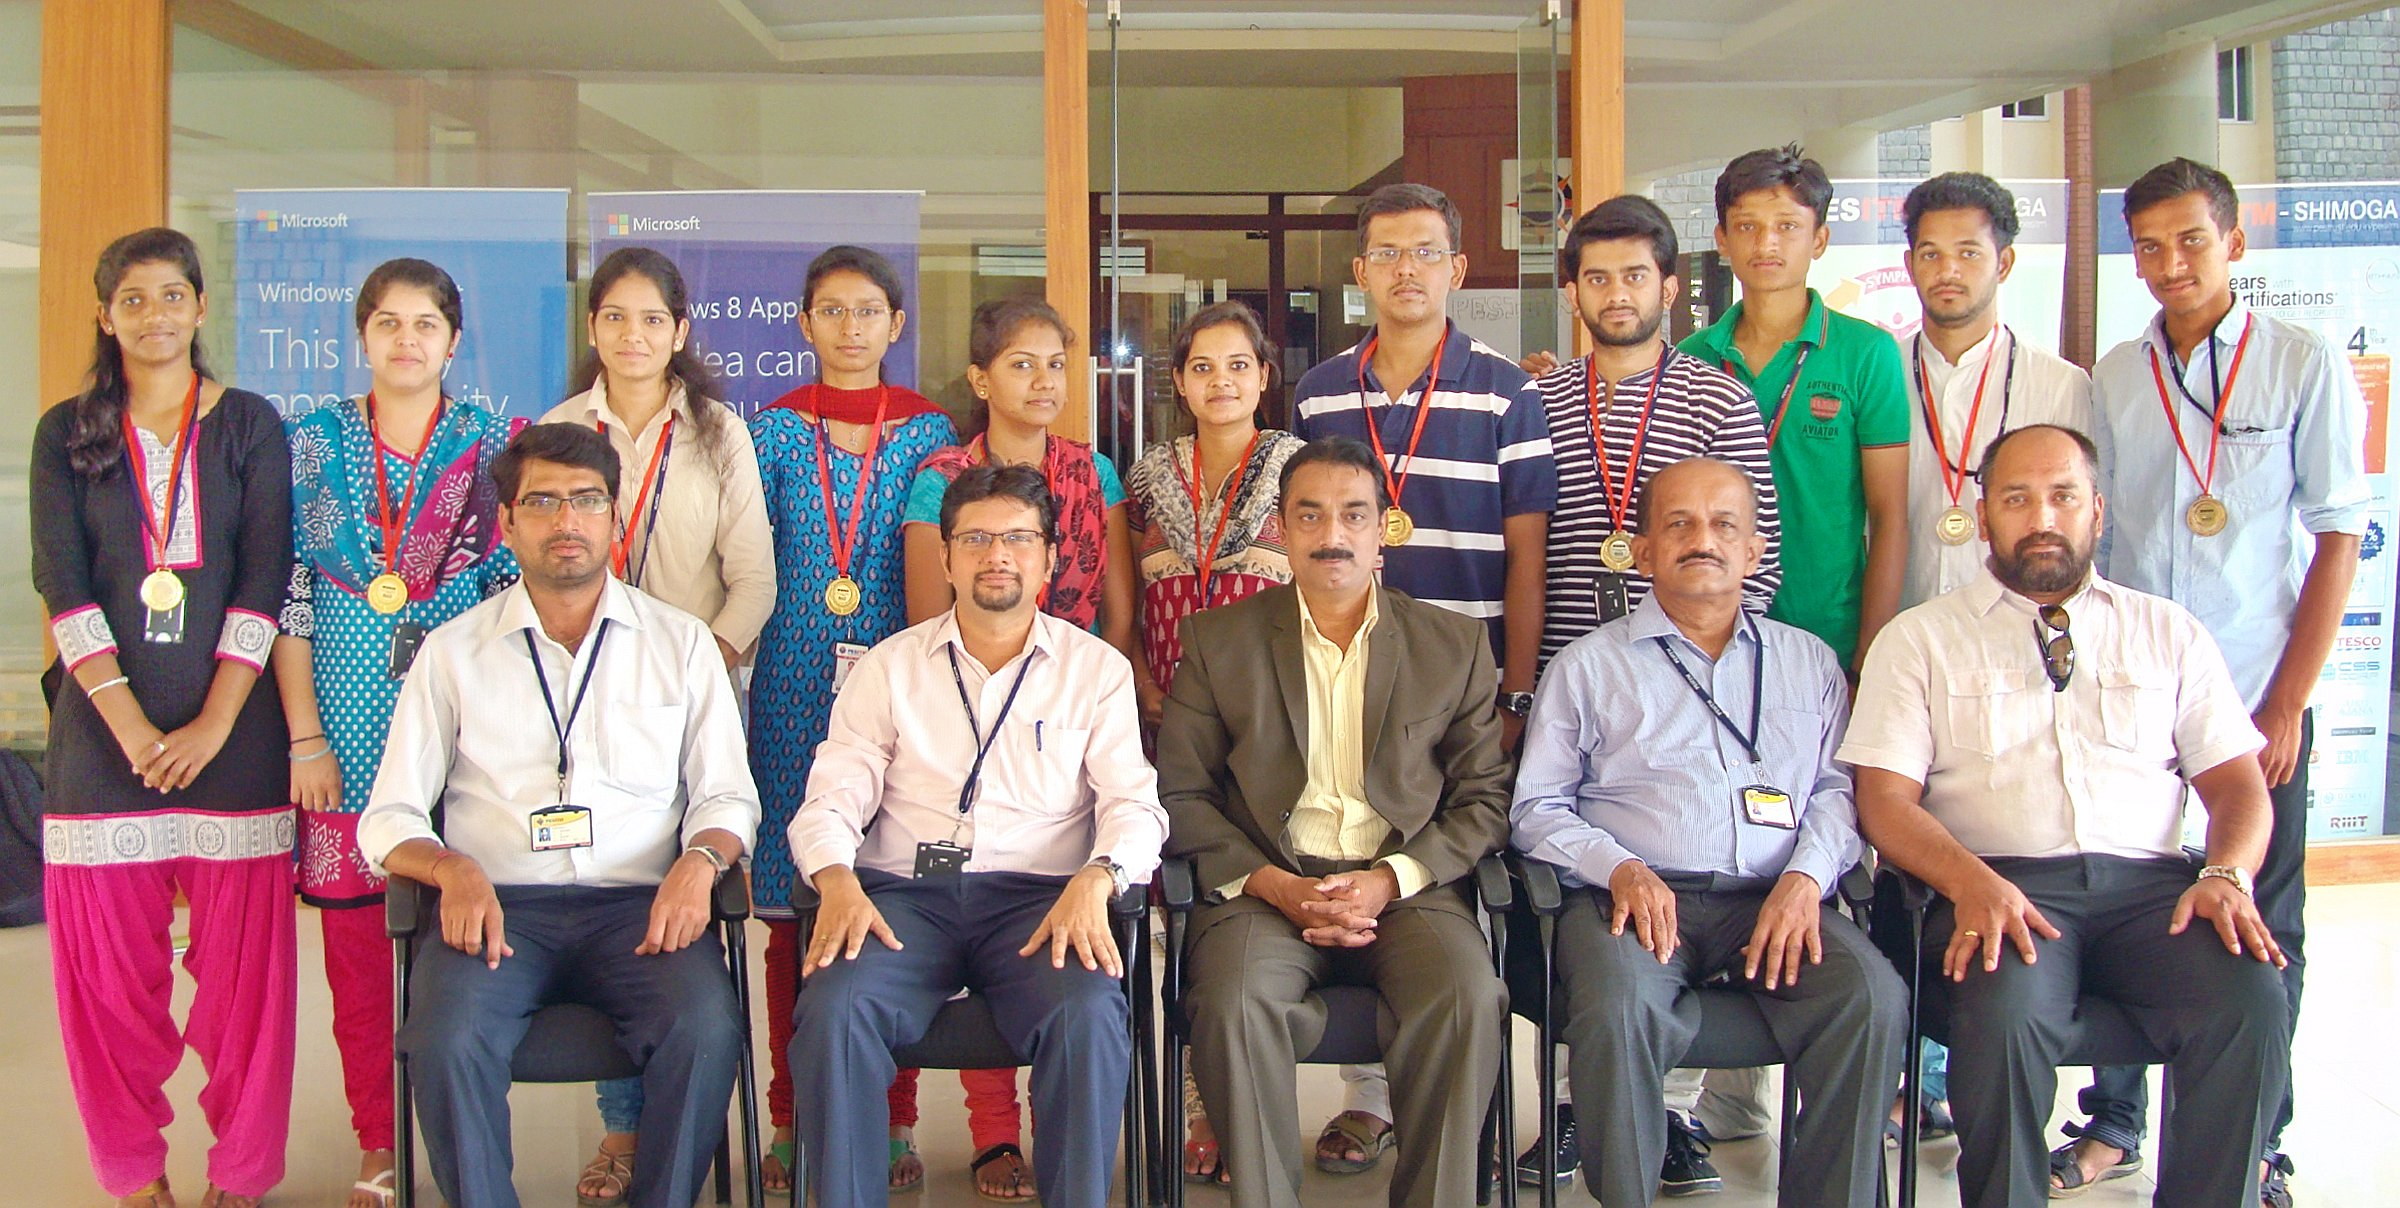 PESITM students bagged 2nd place in National Conference at Mysore